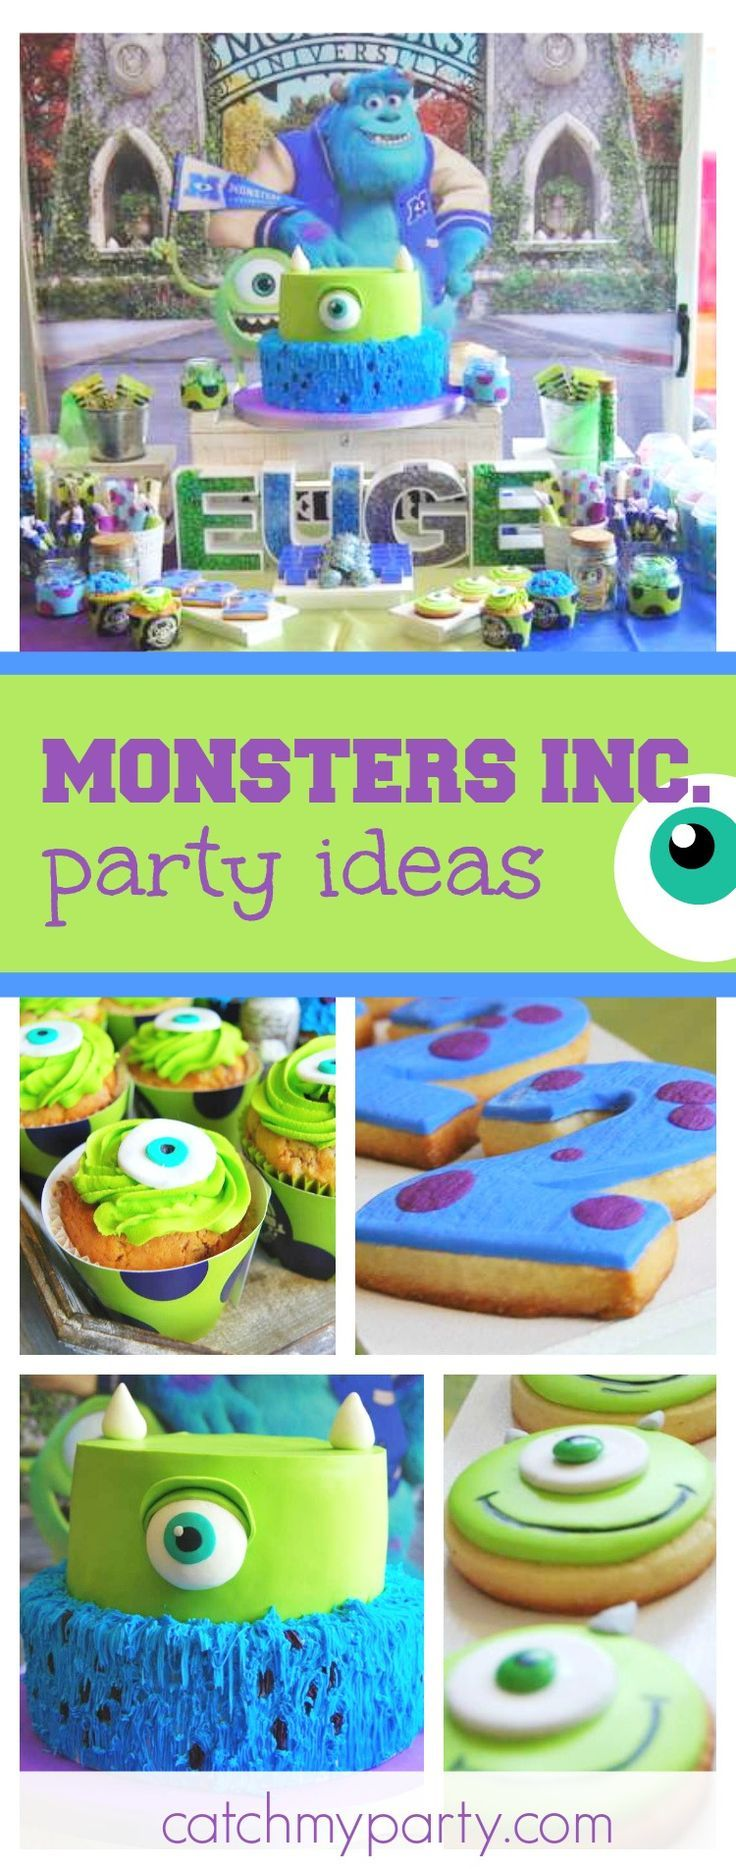 Check out this fun Monsters Inc. University birthday party. The birthday cake is awesome!! See more party ideas and share yours at CatchMyParty.com